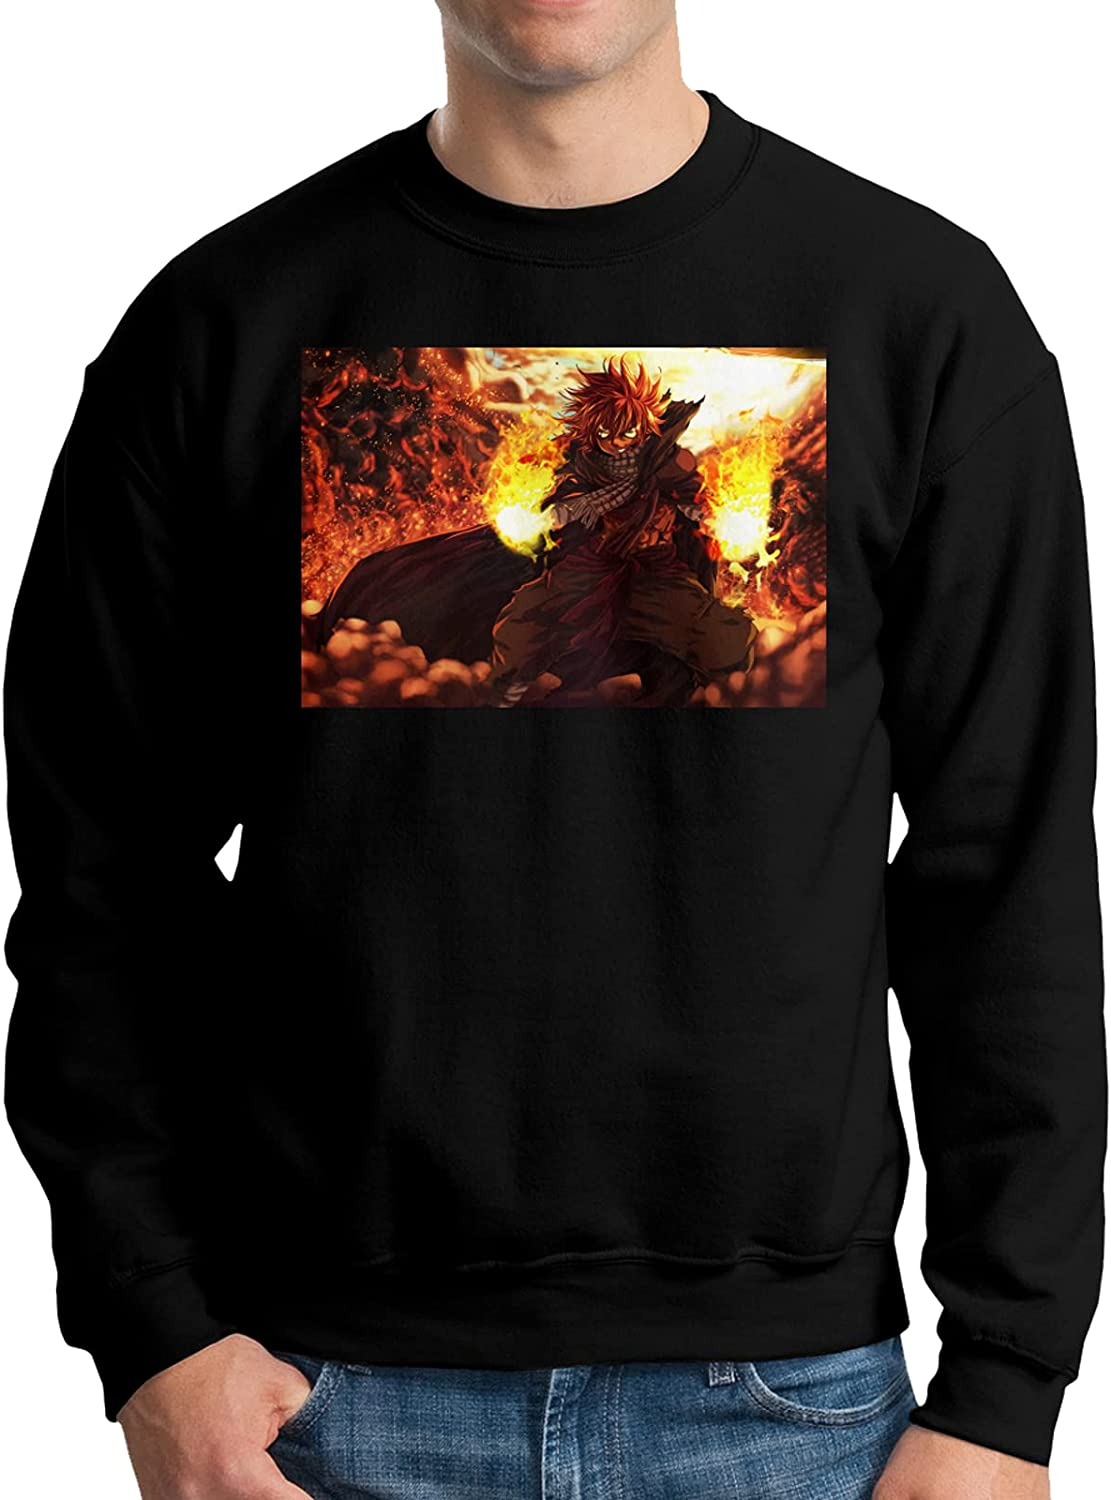 Fairy Tail Natsu Dragneel Hoody Mens Round Neck Al sold out. Sweater Brand Cheap Sale Venue Long Sle